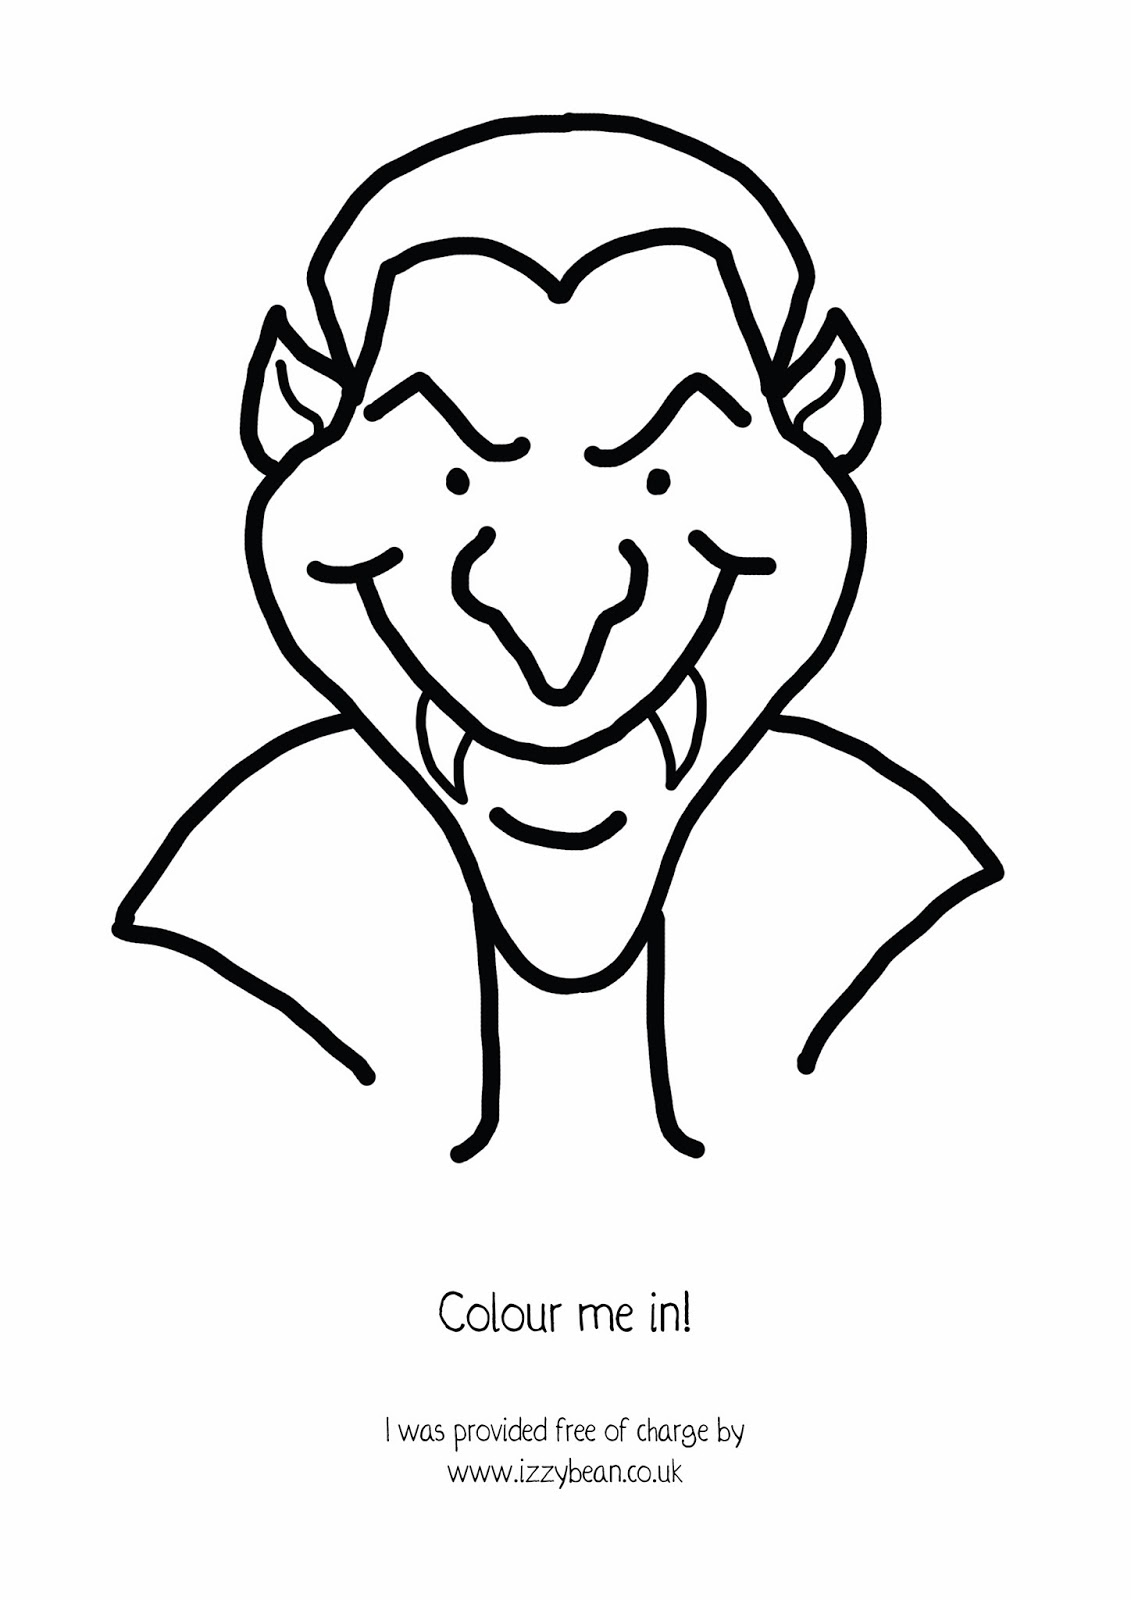 Izzy Bean Illustrations Step By HALLOWEEN DRACULA VAMPIRE MONSTER With Free Colouring Sheet For Kids